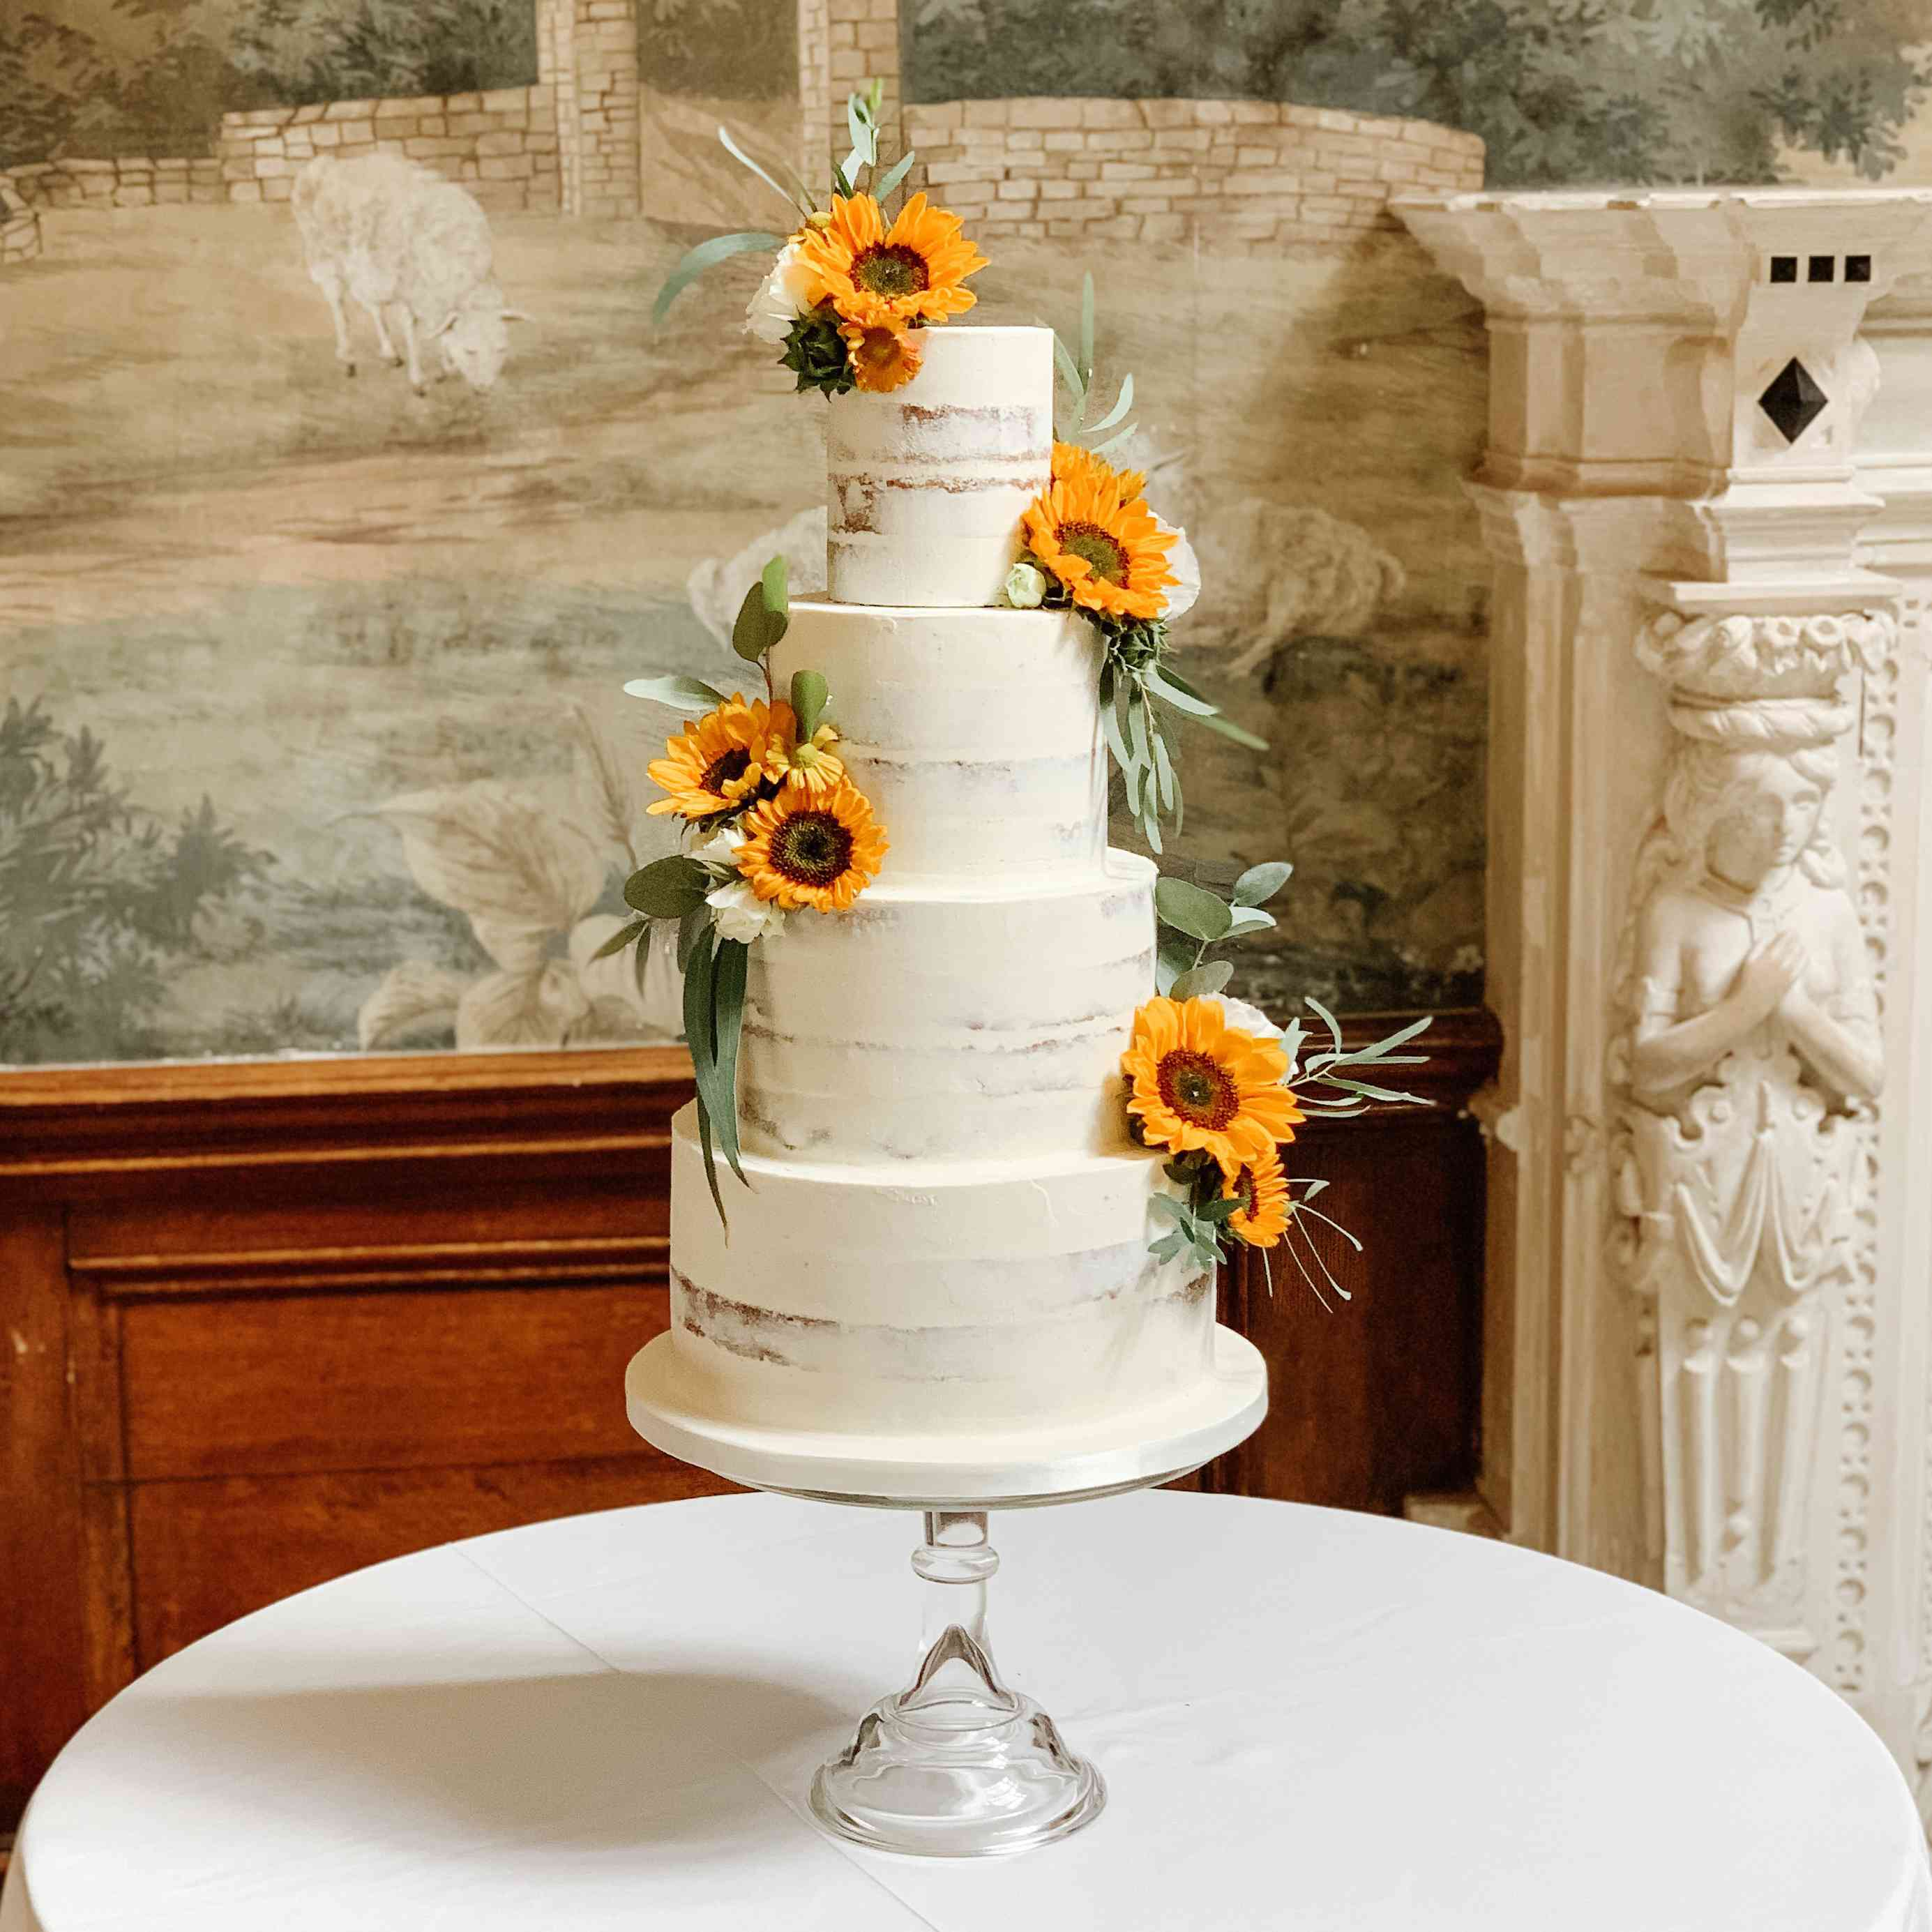 14 Sunflower Wedding Cake Ideas